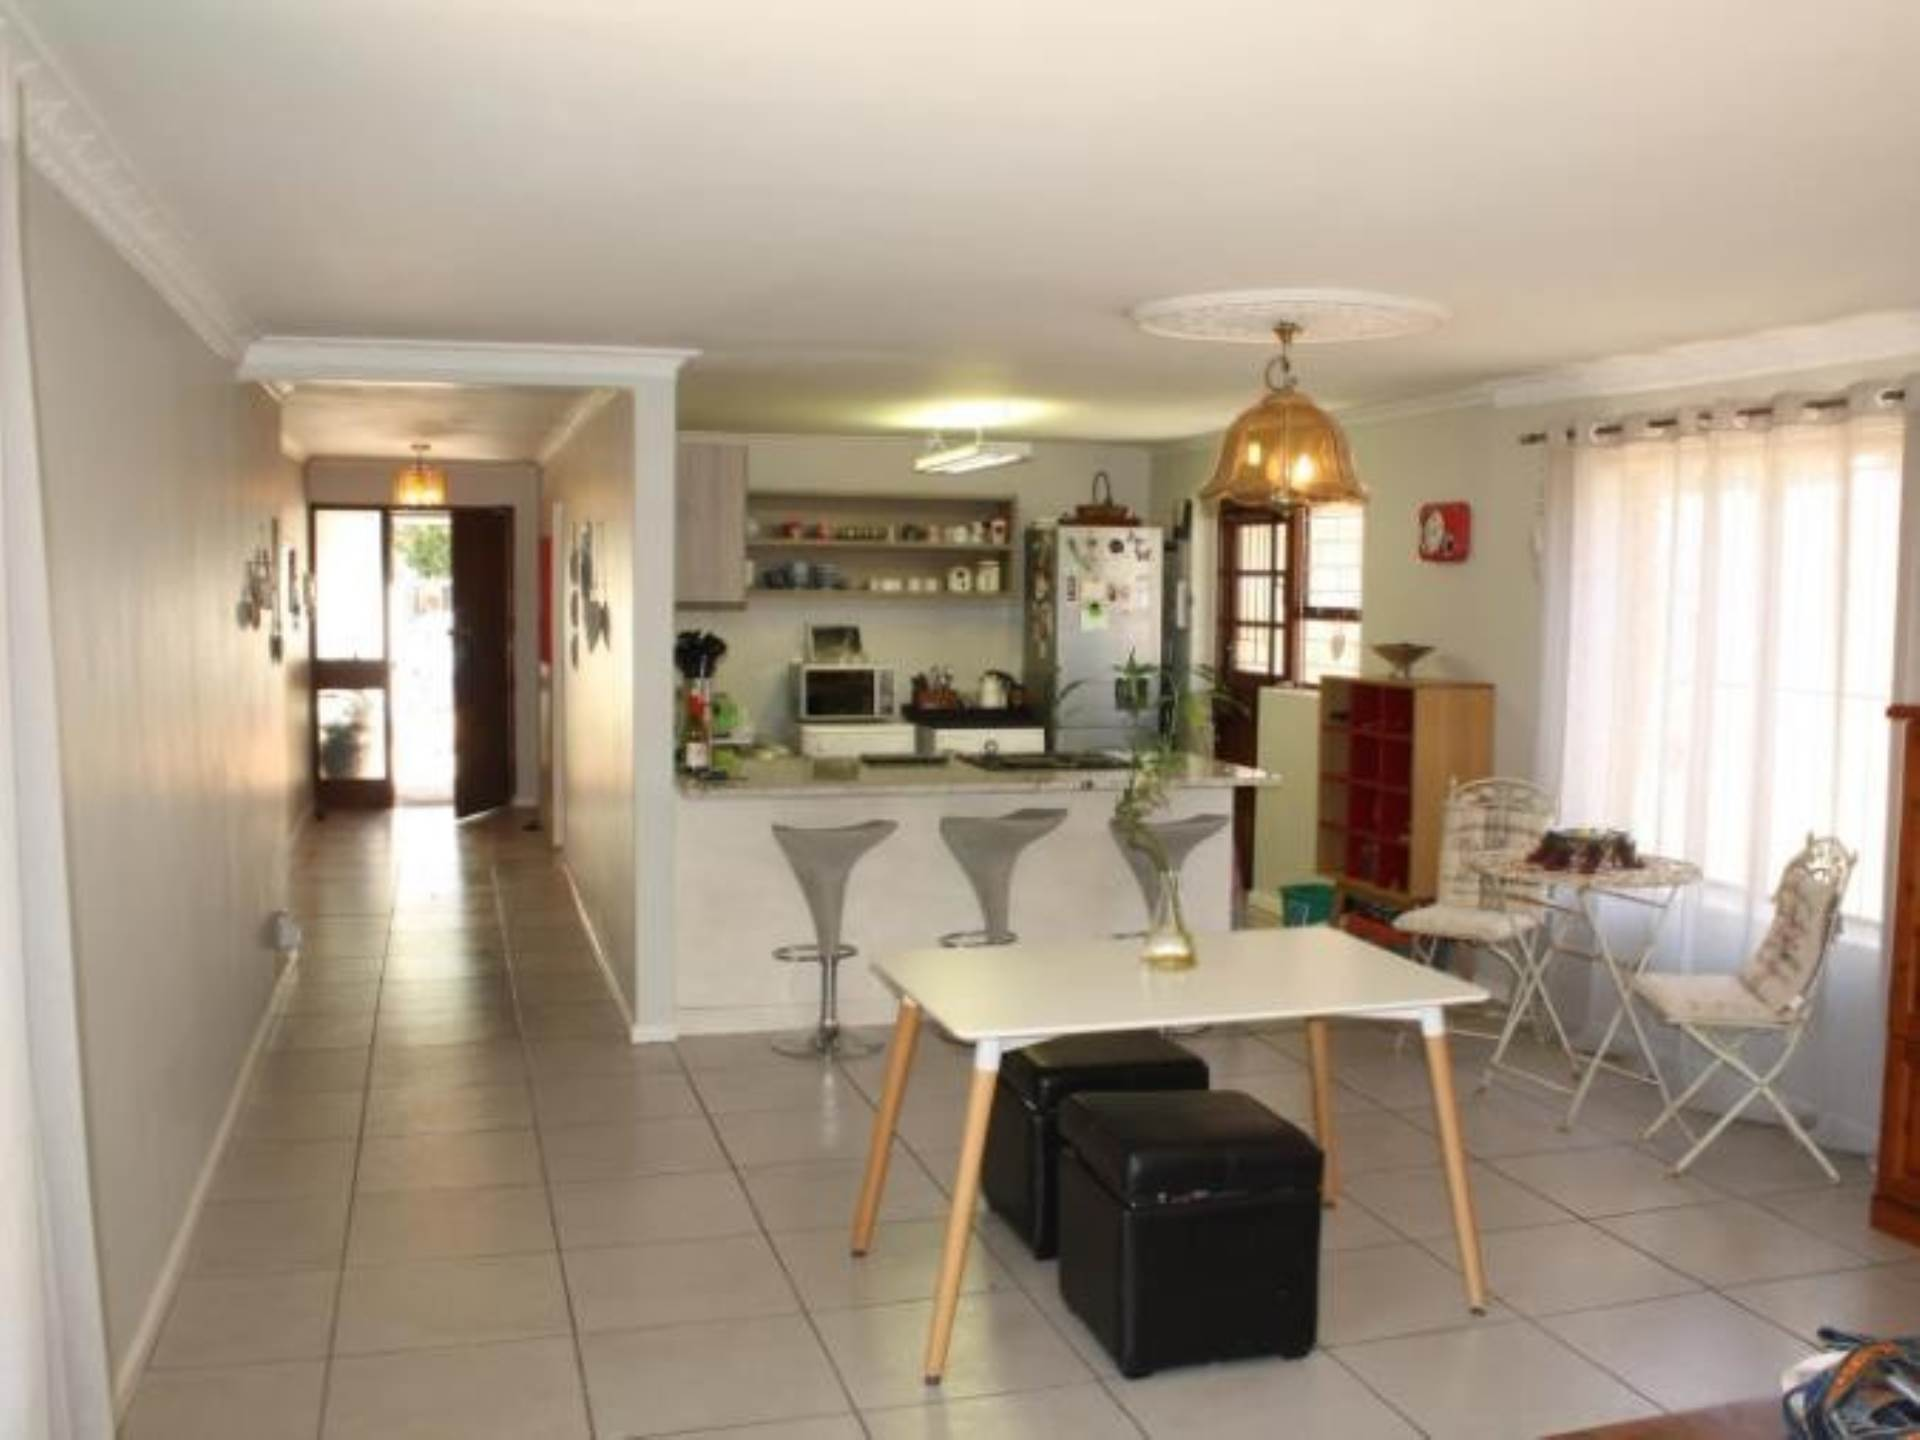 3 BedroomHouse For Sale In Durbanville Hills